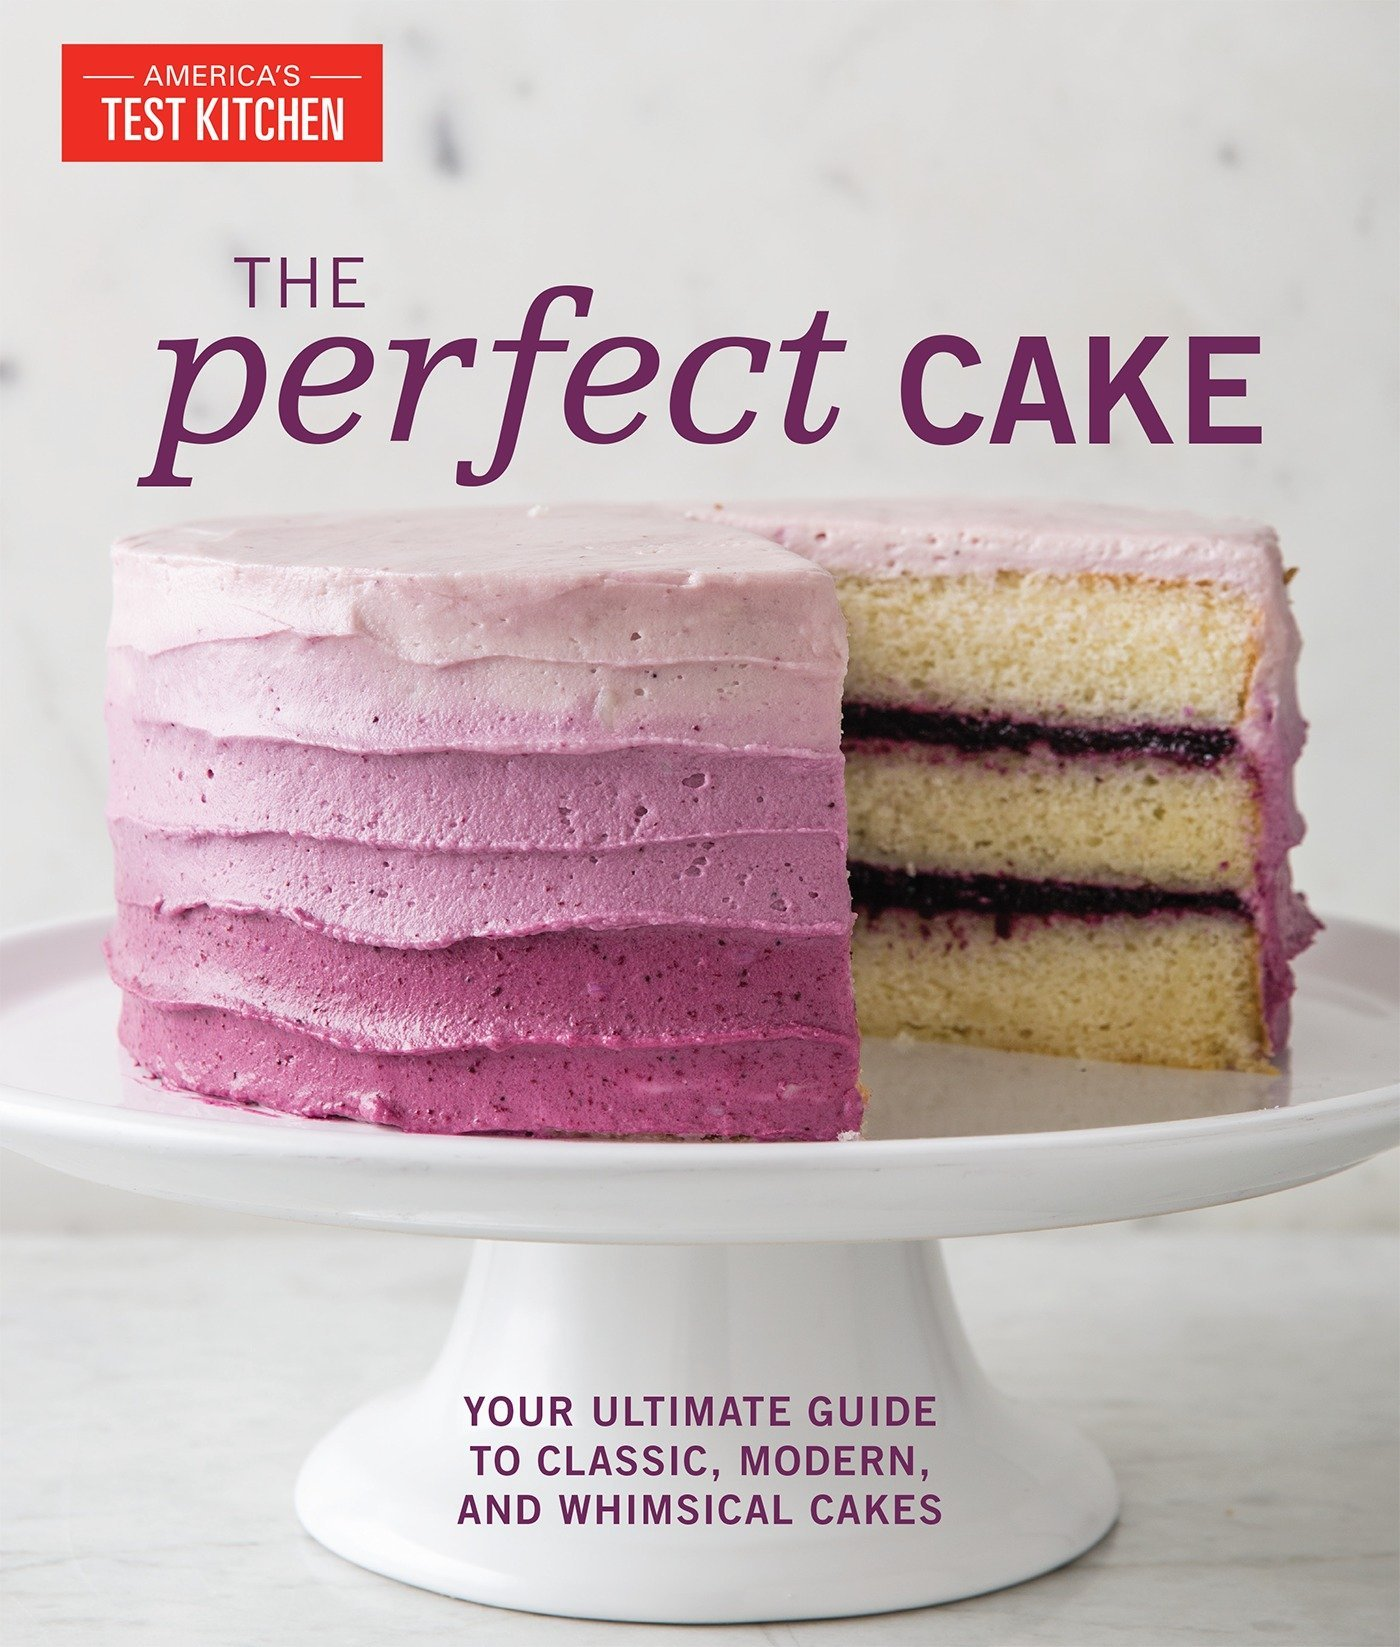 The Perfect Cake: Your Ultimate Guide to Classic, Modern, and Whimsical Cakes by America's Test Kitchen